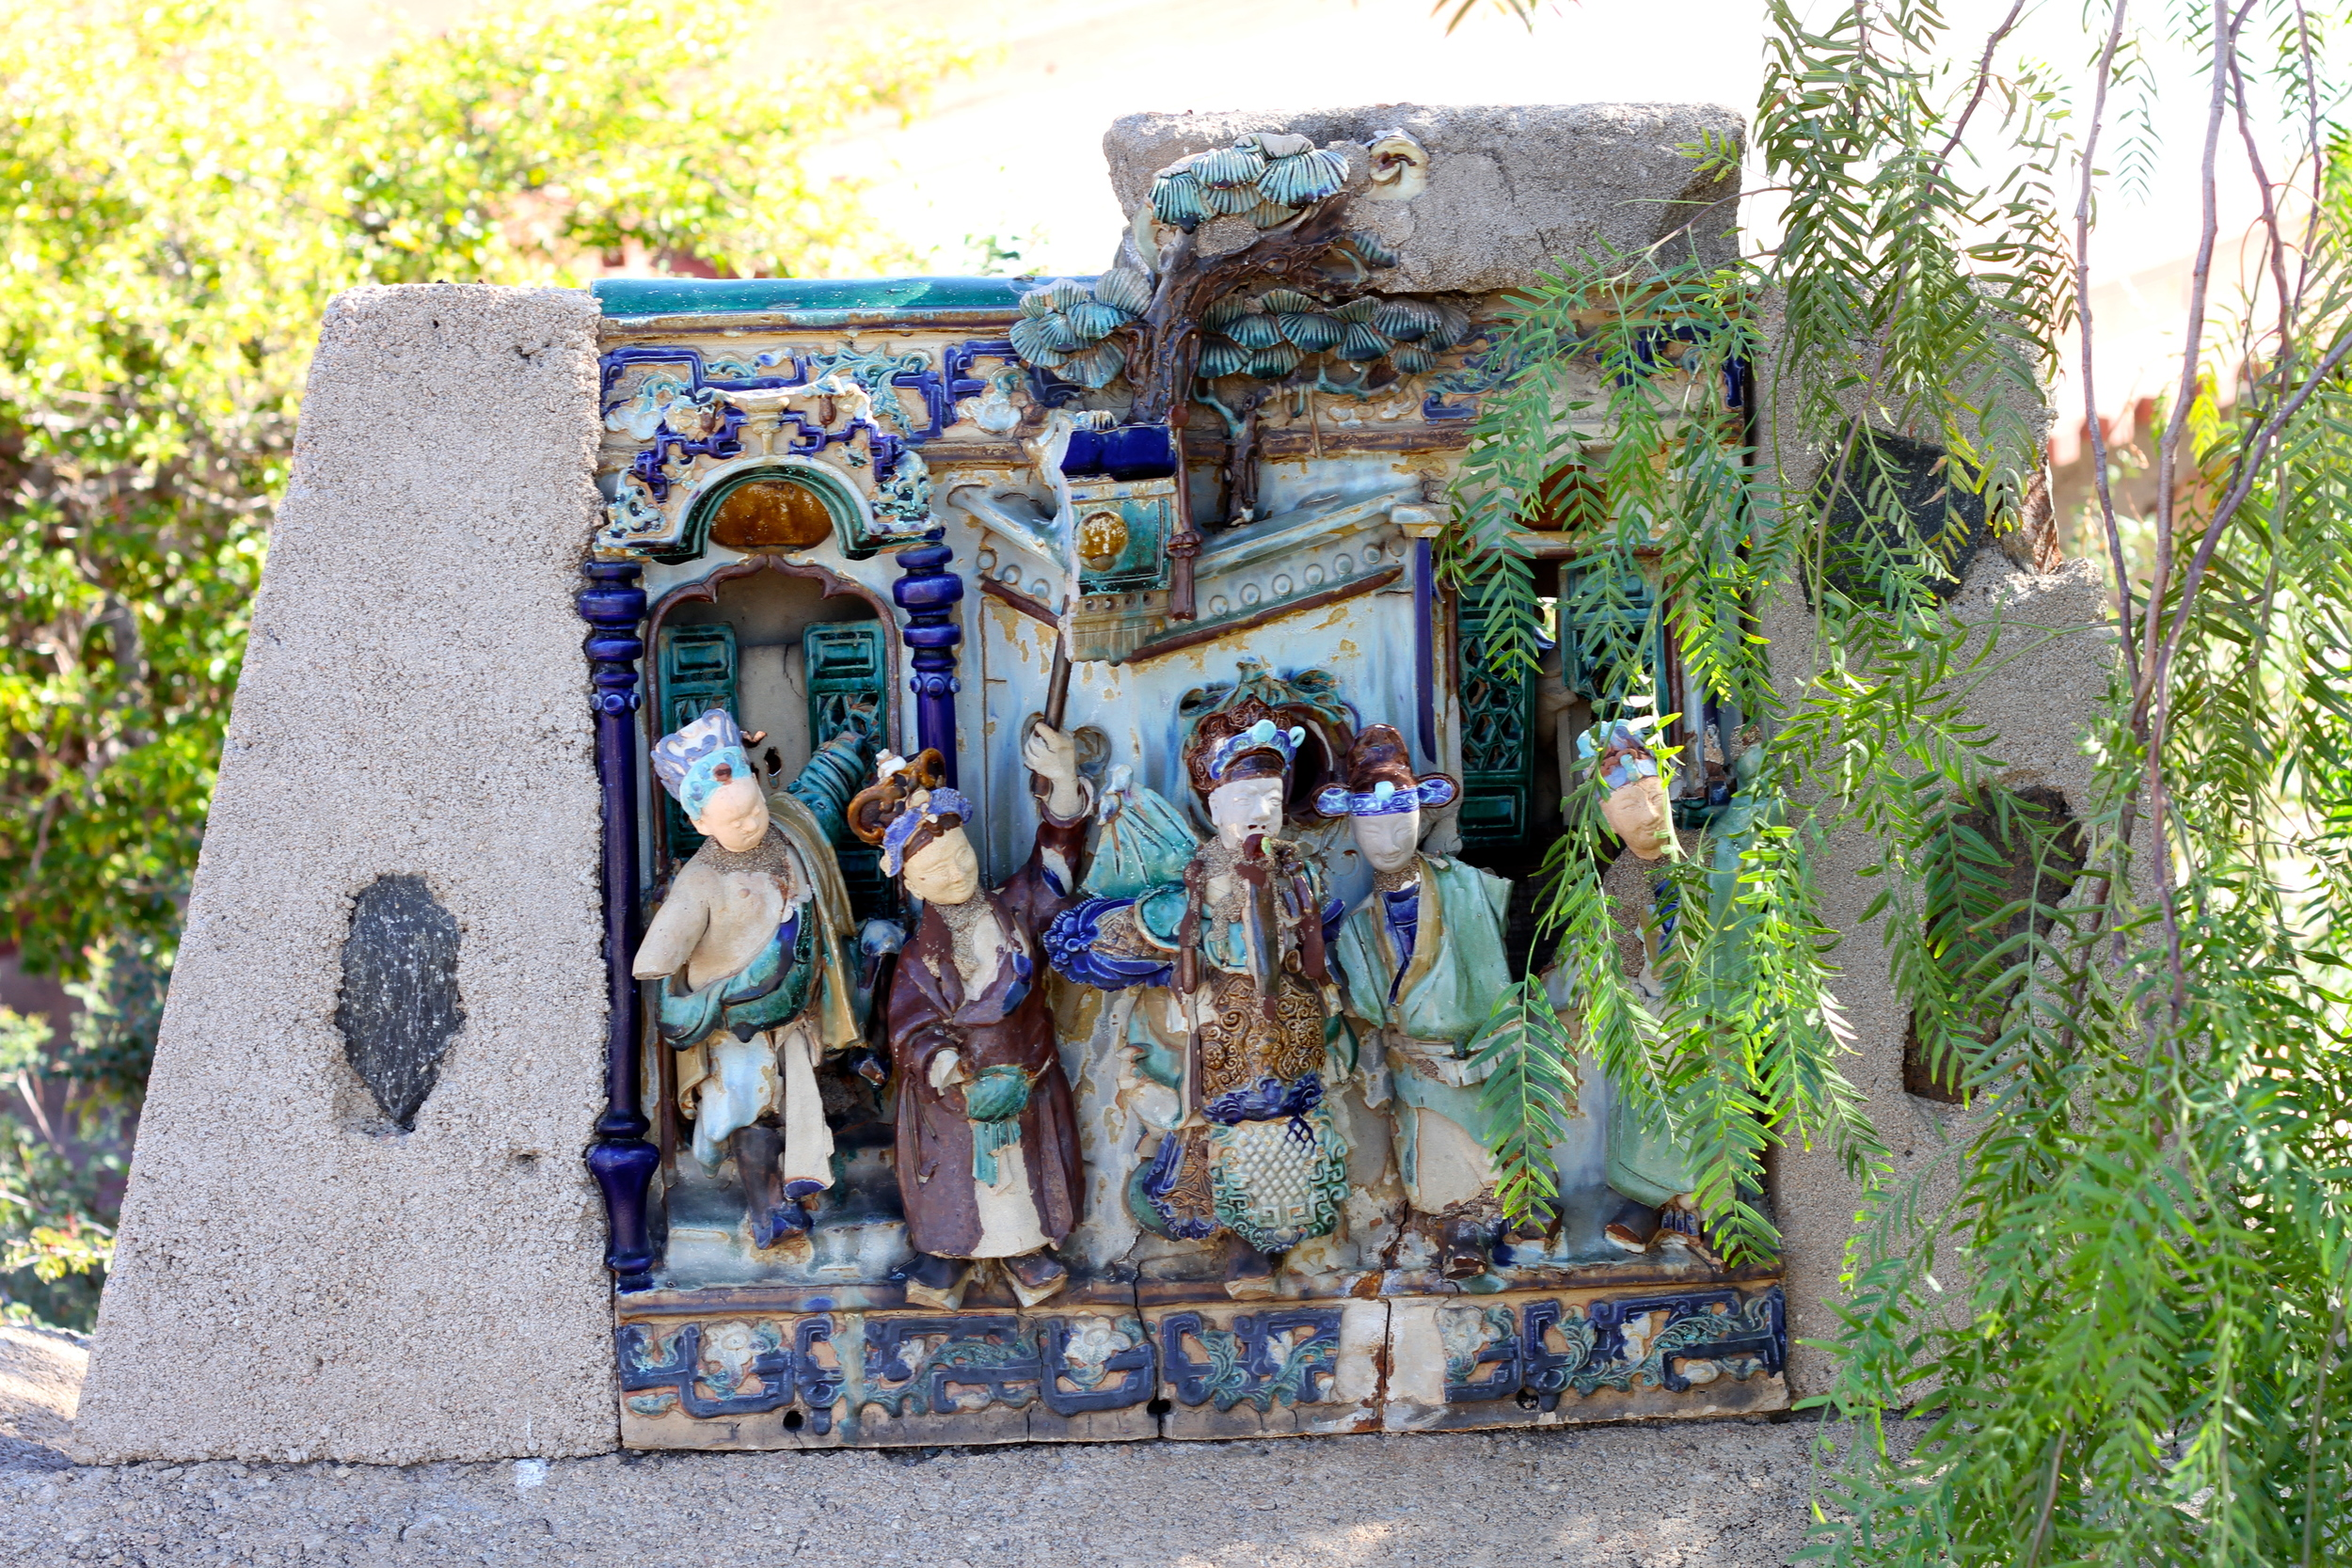 I spotted several of these ancient Chinese theater scenes, each one cemented into place throughout the property.